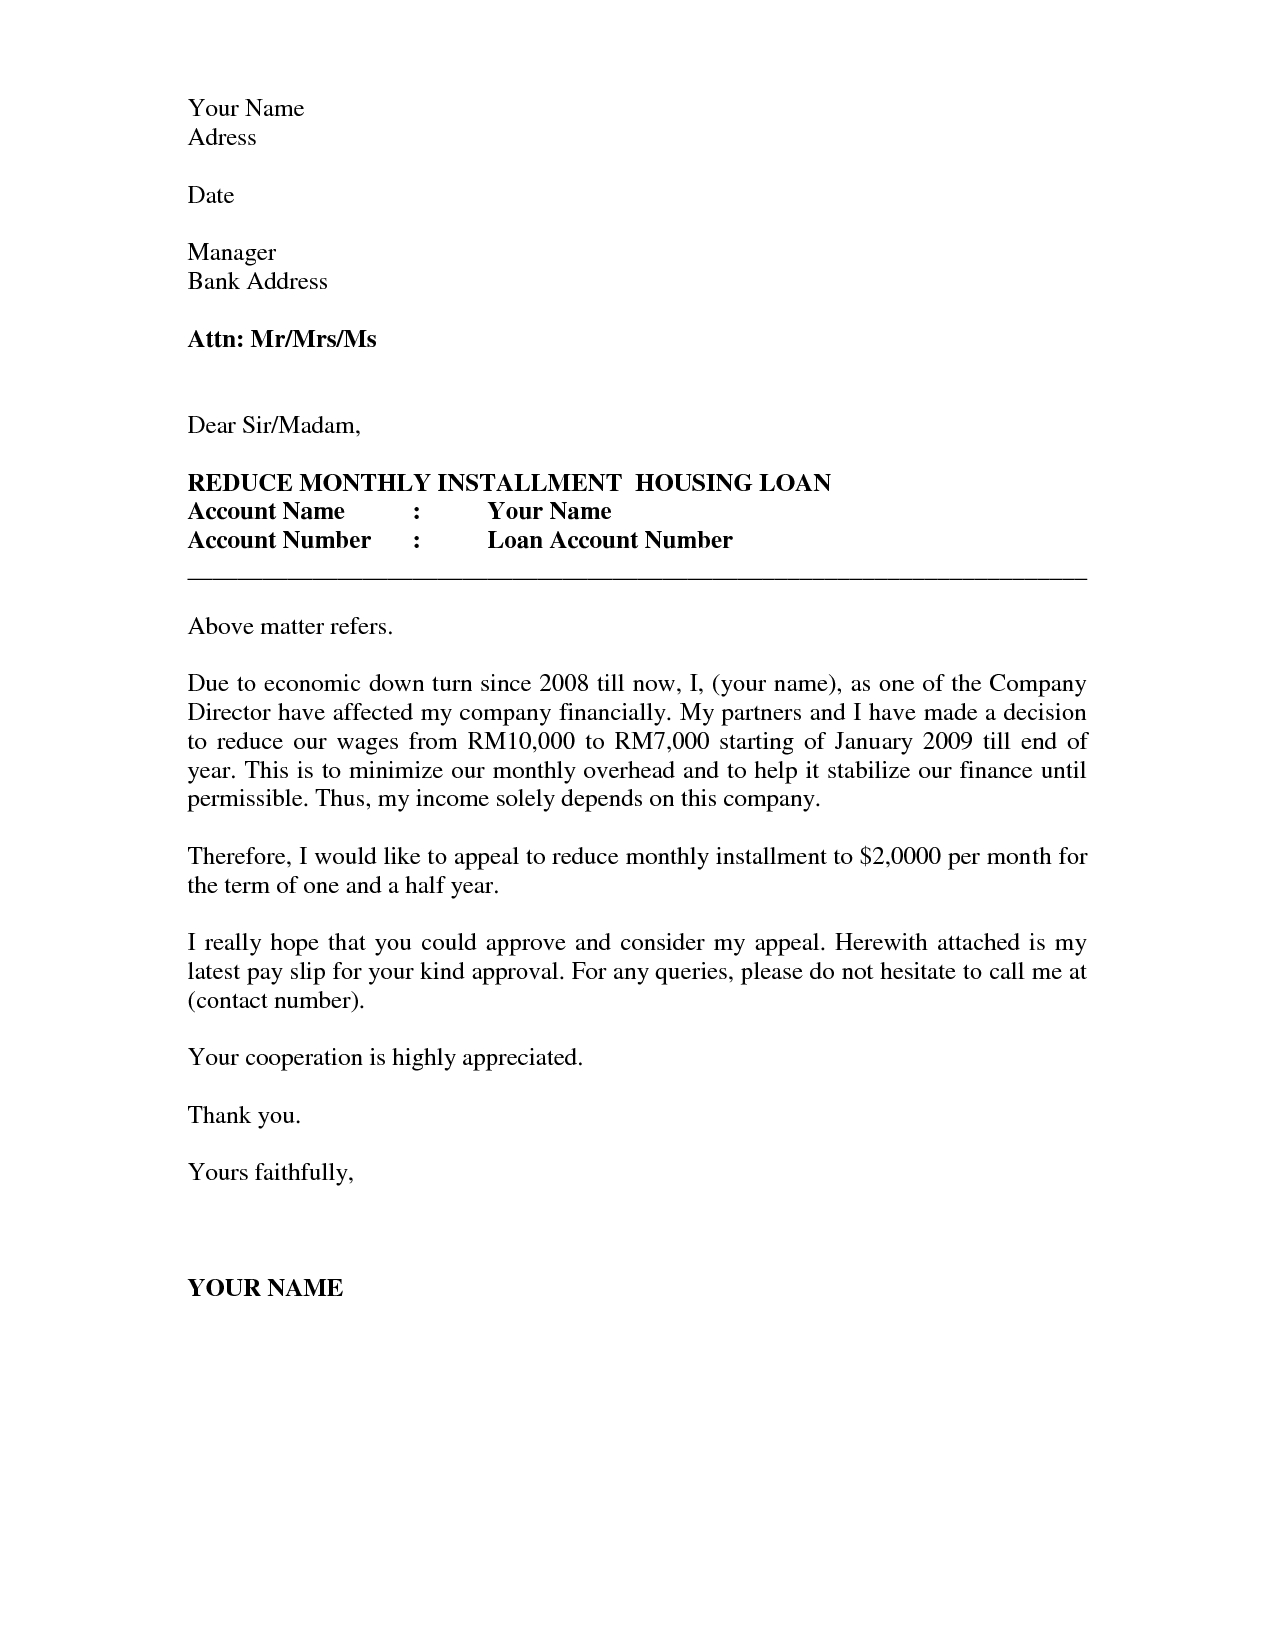 Insurance Denial Letter Template - How to Write A Good Appeal Letter Acurnamedia